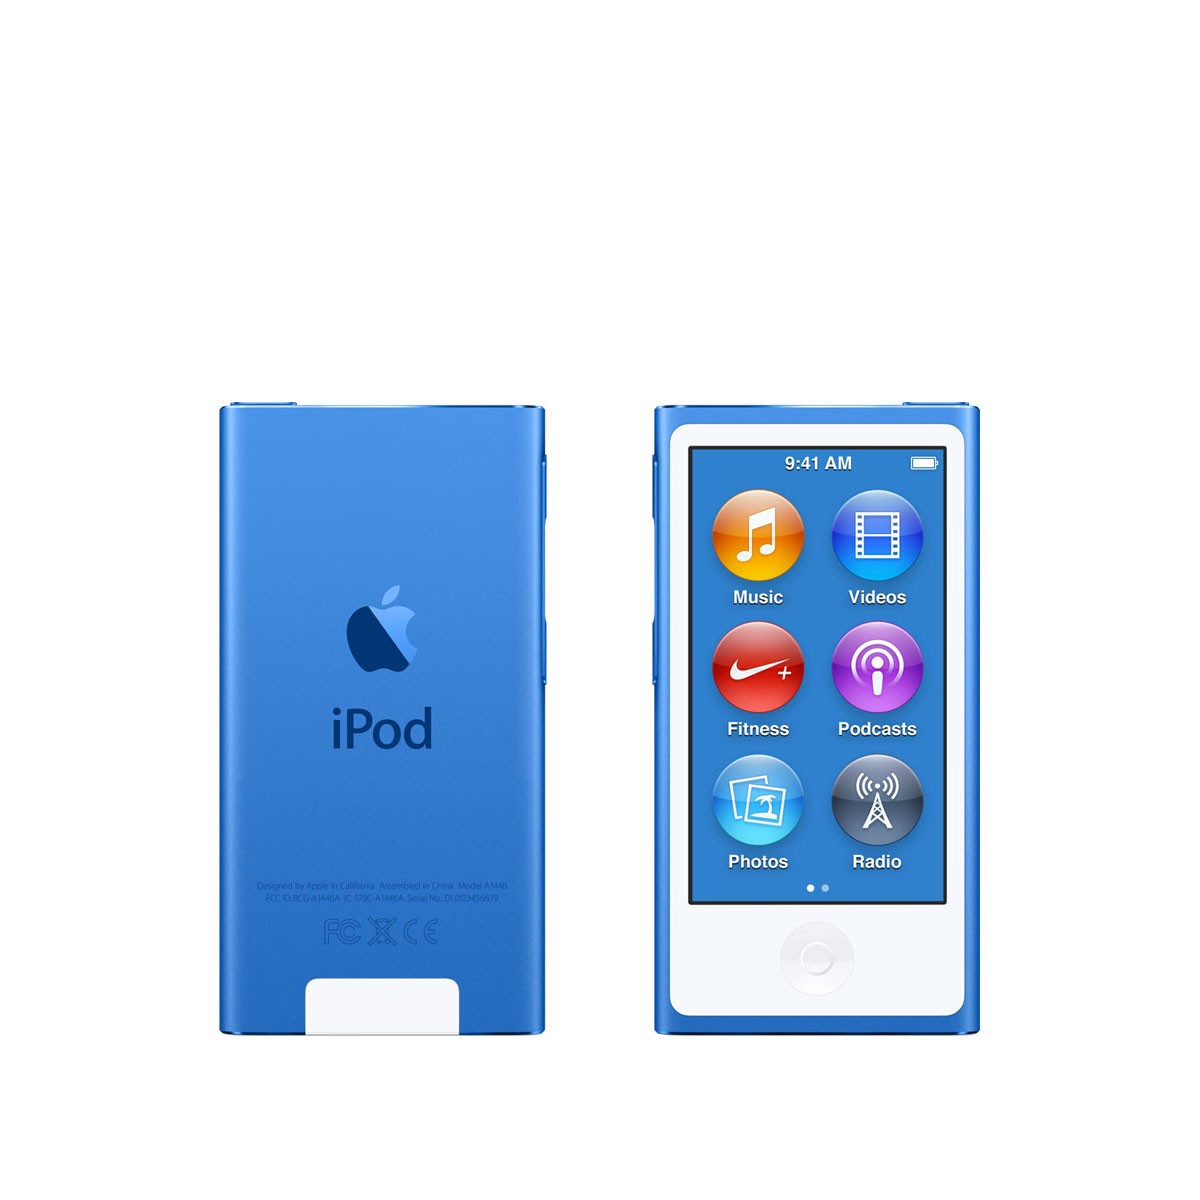 Син Apple iPod nano плейър 8-мо поколение с 16 GB памет